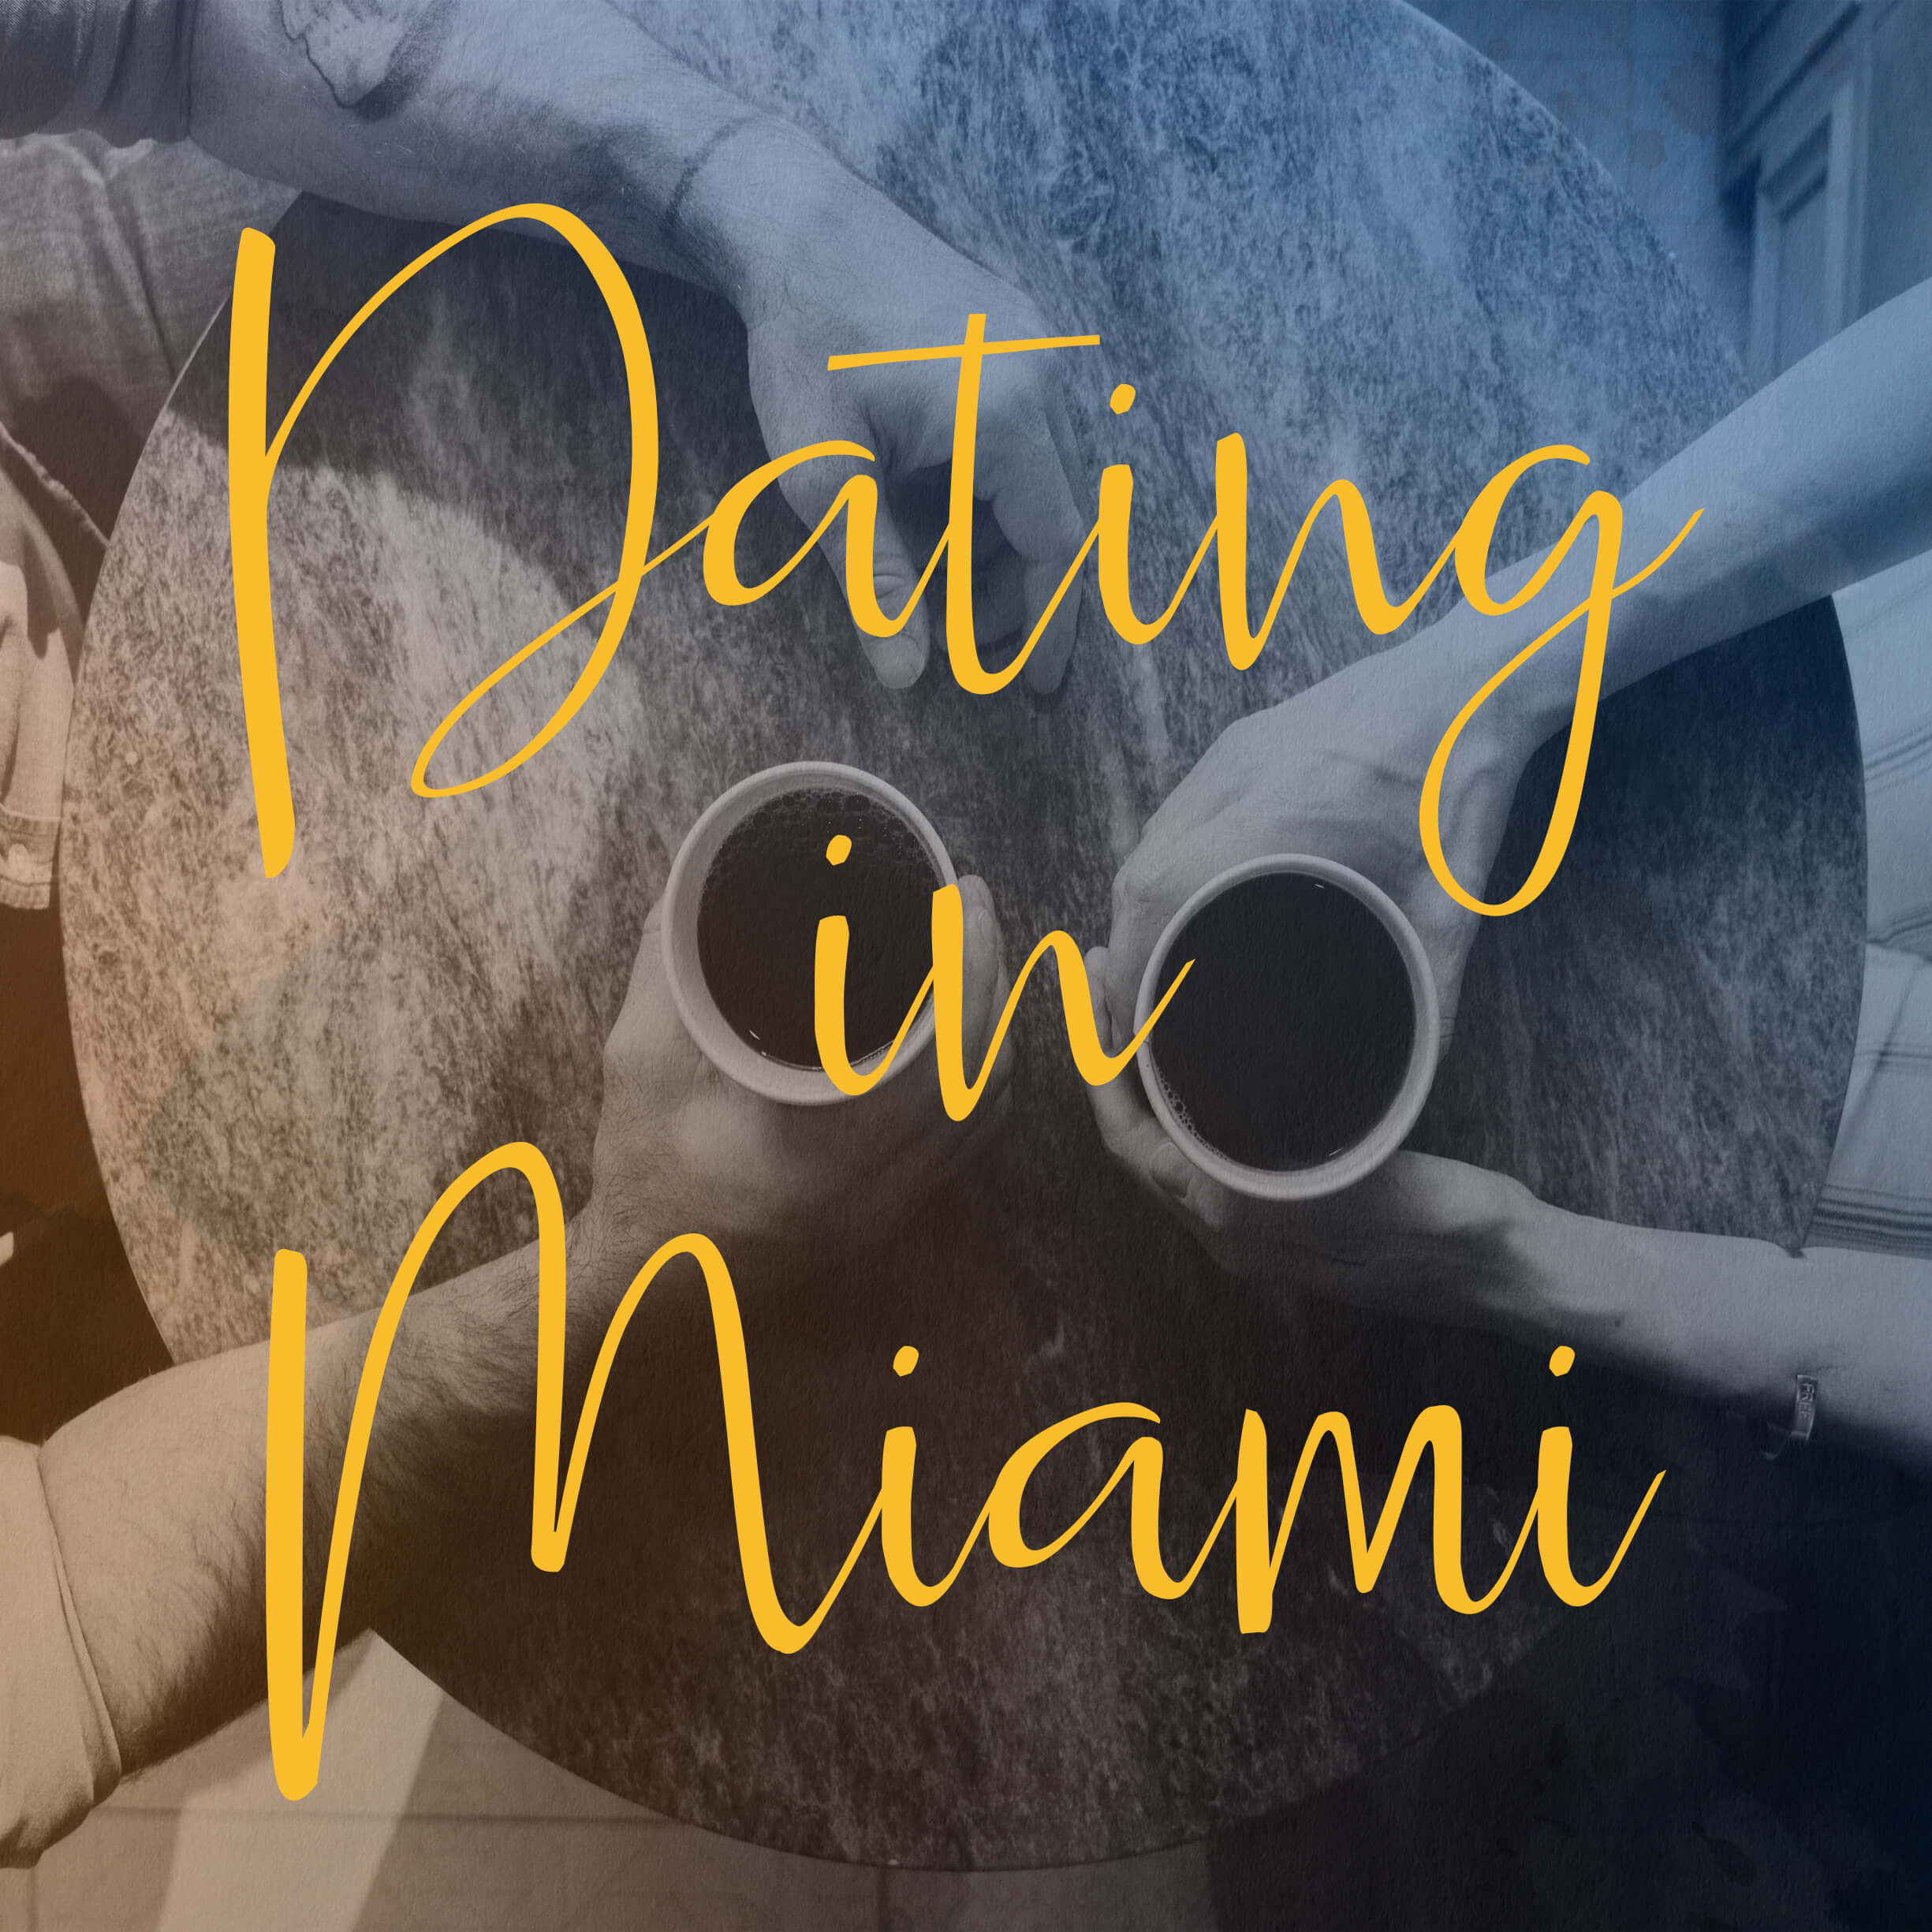 dating help therapist counselor miami brickell